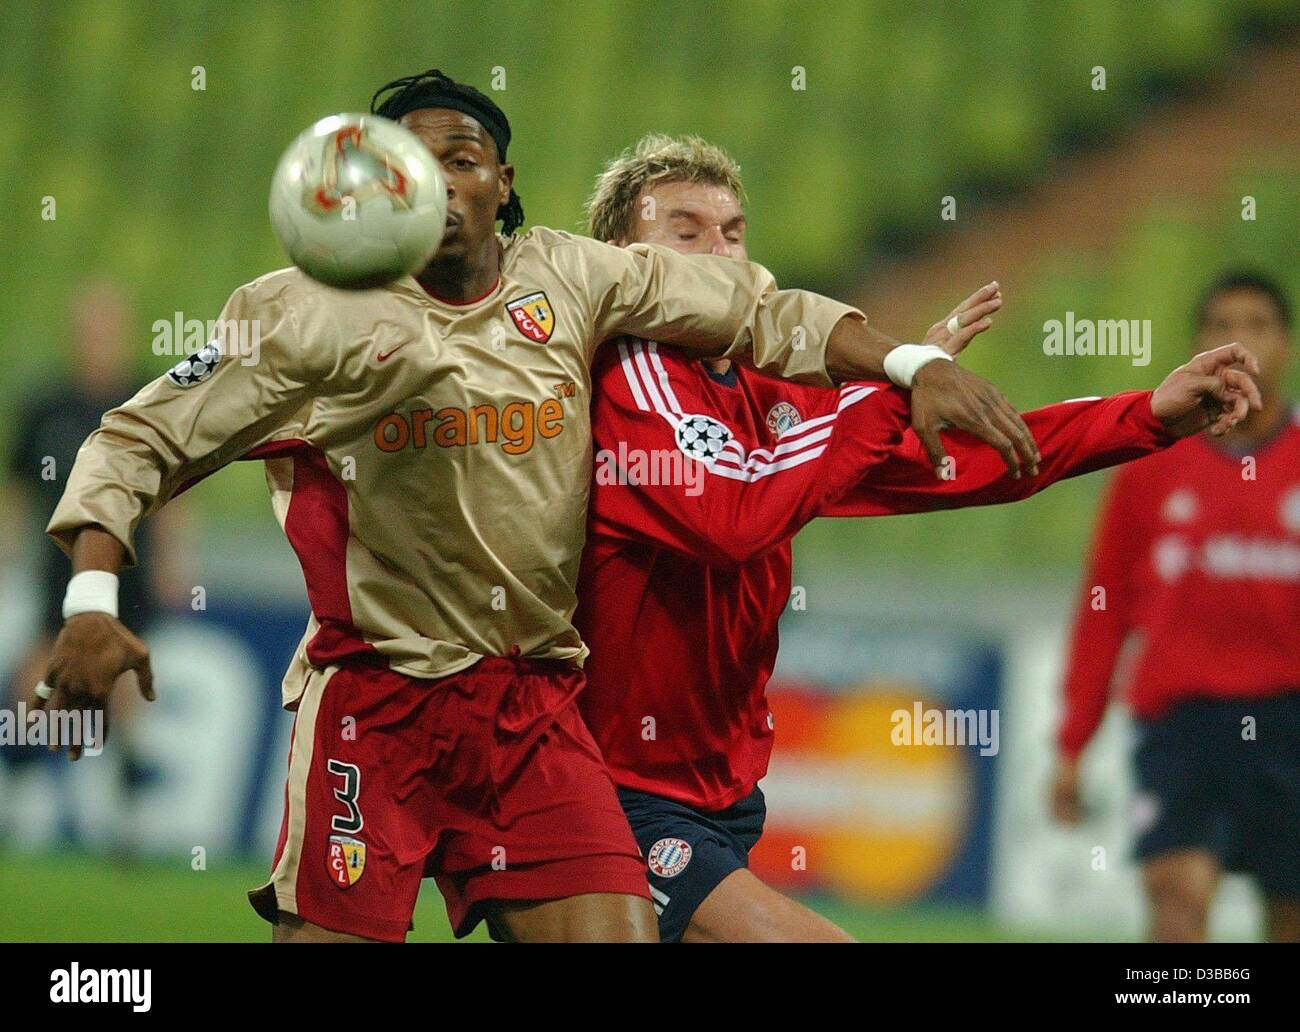 (dpa) - Bayern's forward Alexander Zickler (R) fights for the ball with Lens' Cameroon defender Rigobert - Stock Image